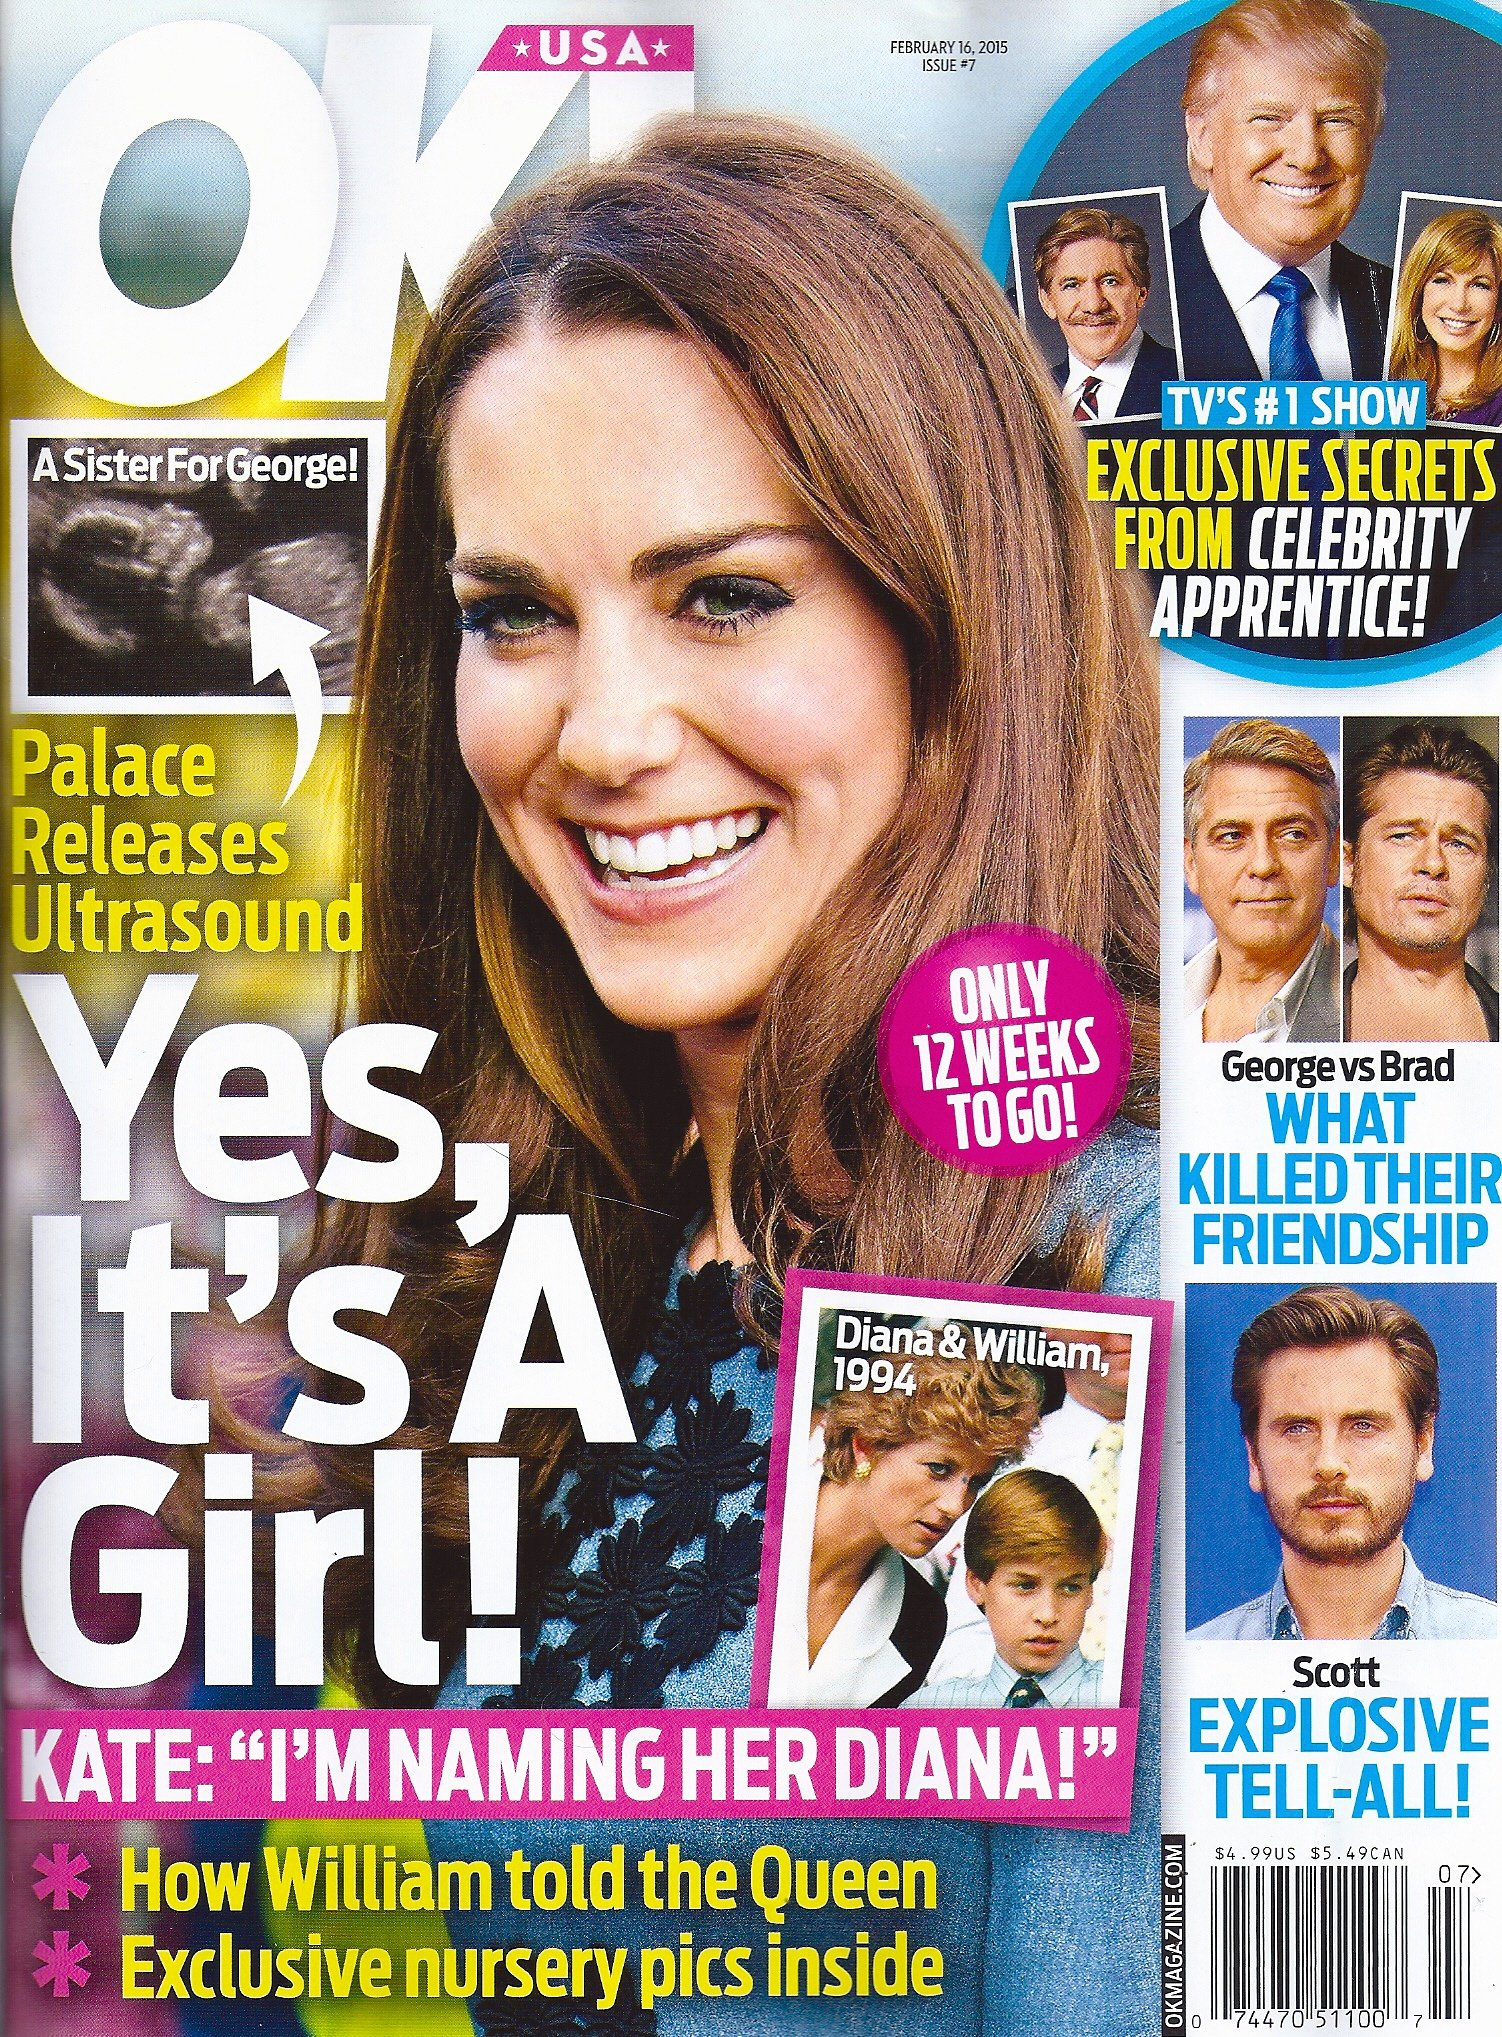 Download Princess Kate Middleton * Scott Disick * George Clooney Vs. Brad Pitt * Celebrity Apprentice * Margot Robbie * February 16, 2015 OK! Magazine ebook